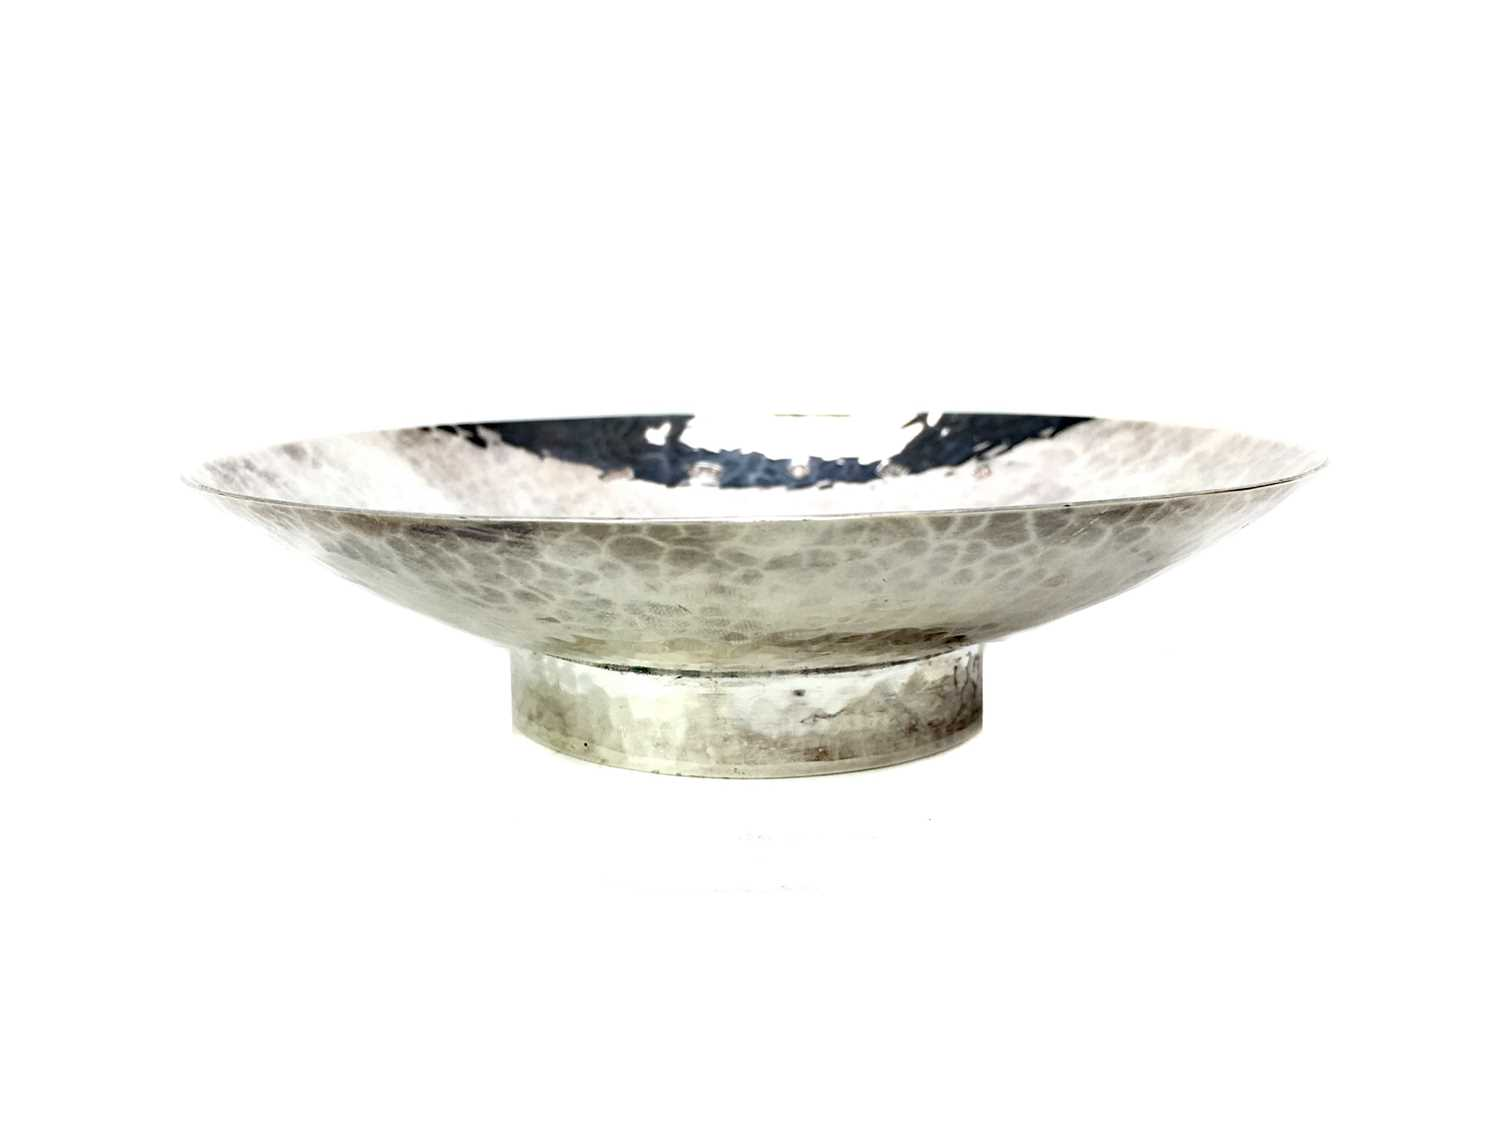 Lot 414 - A HAMMERED SILVER DISH